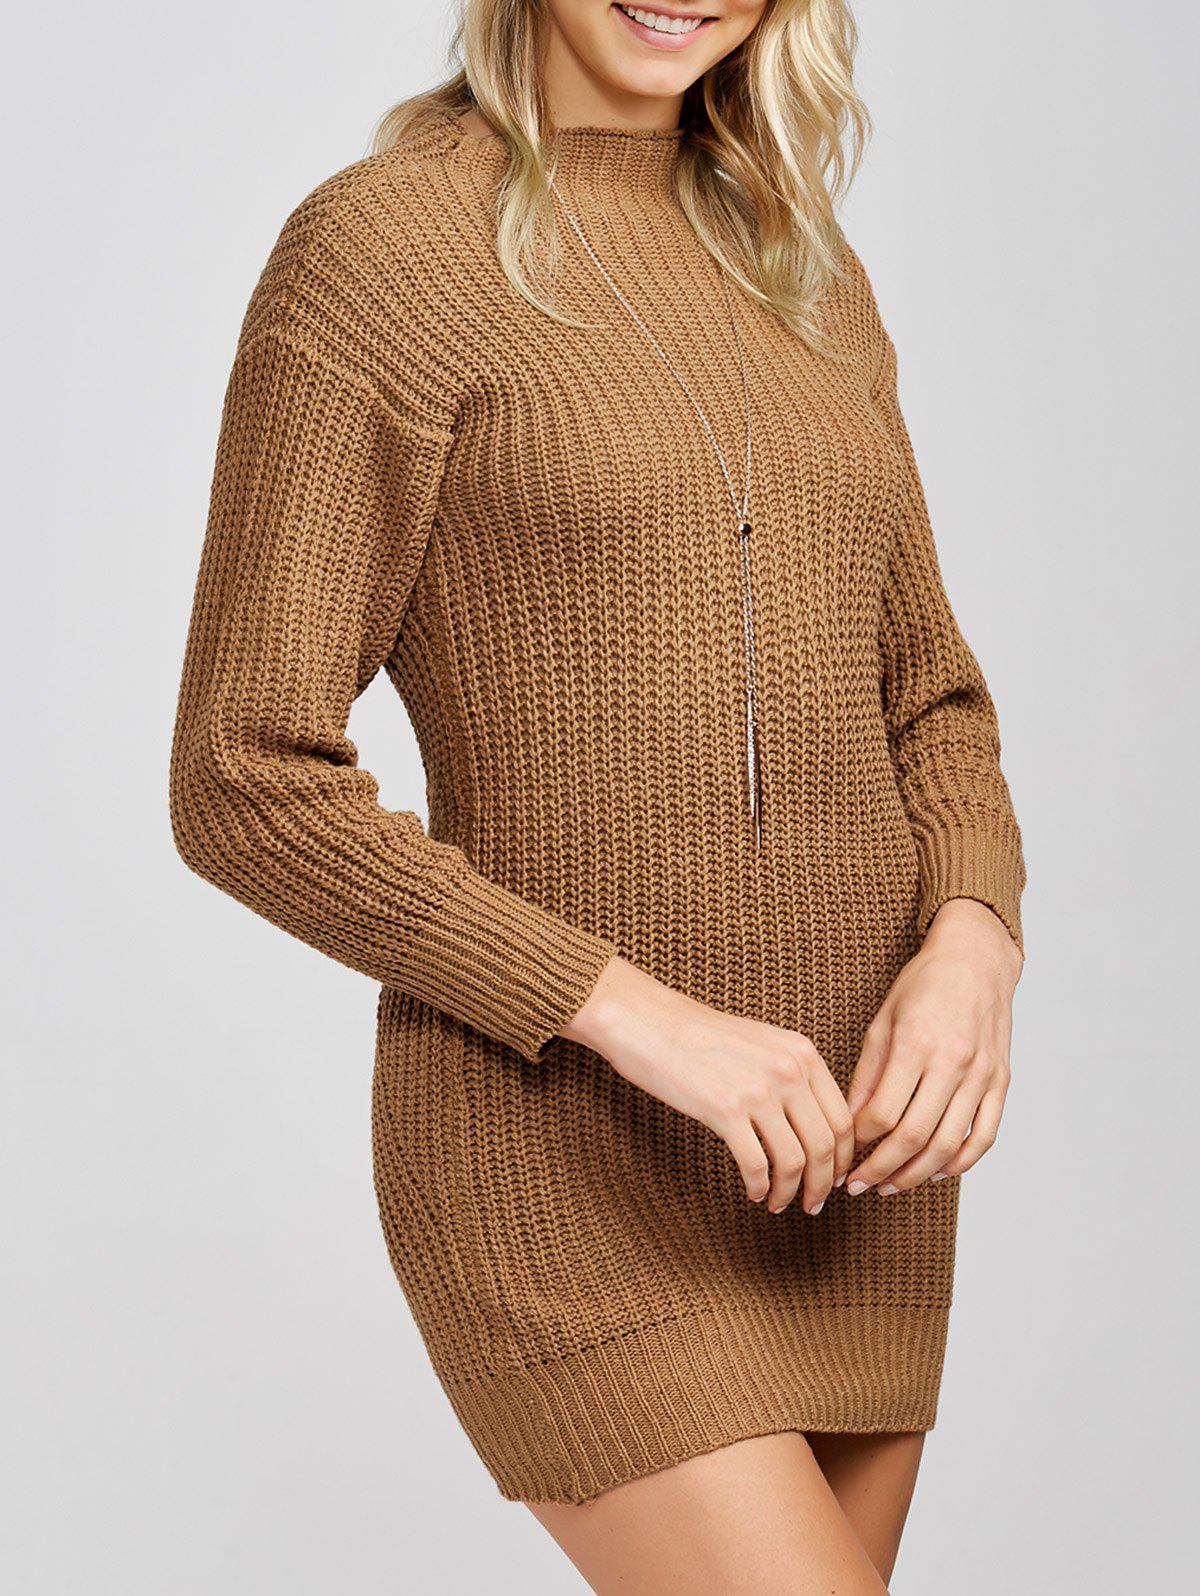 New Mock Neck Knit Slimming Sweater Dress